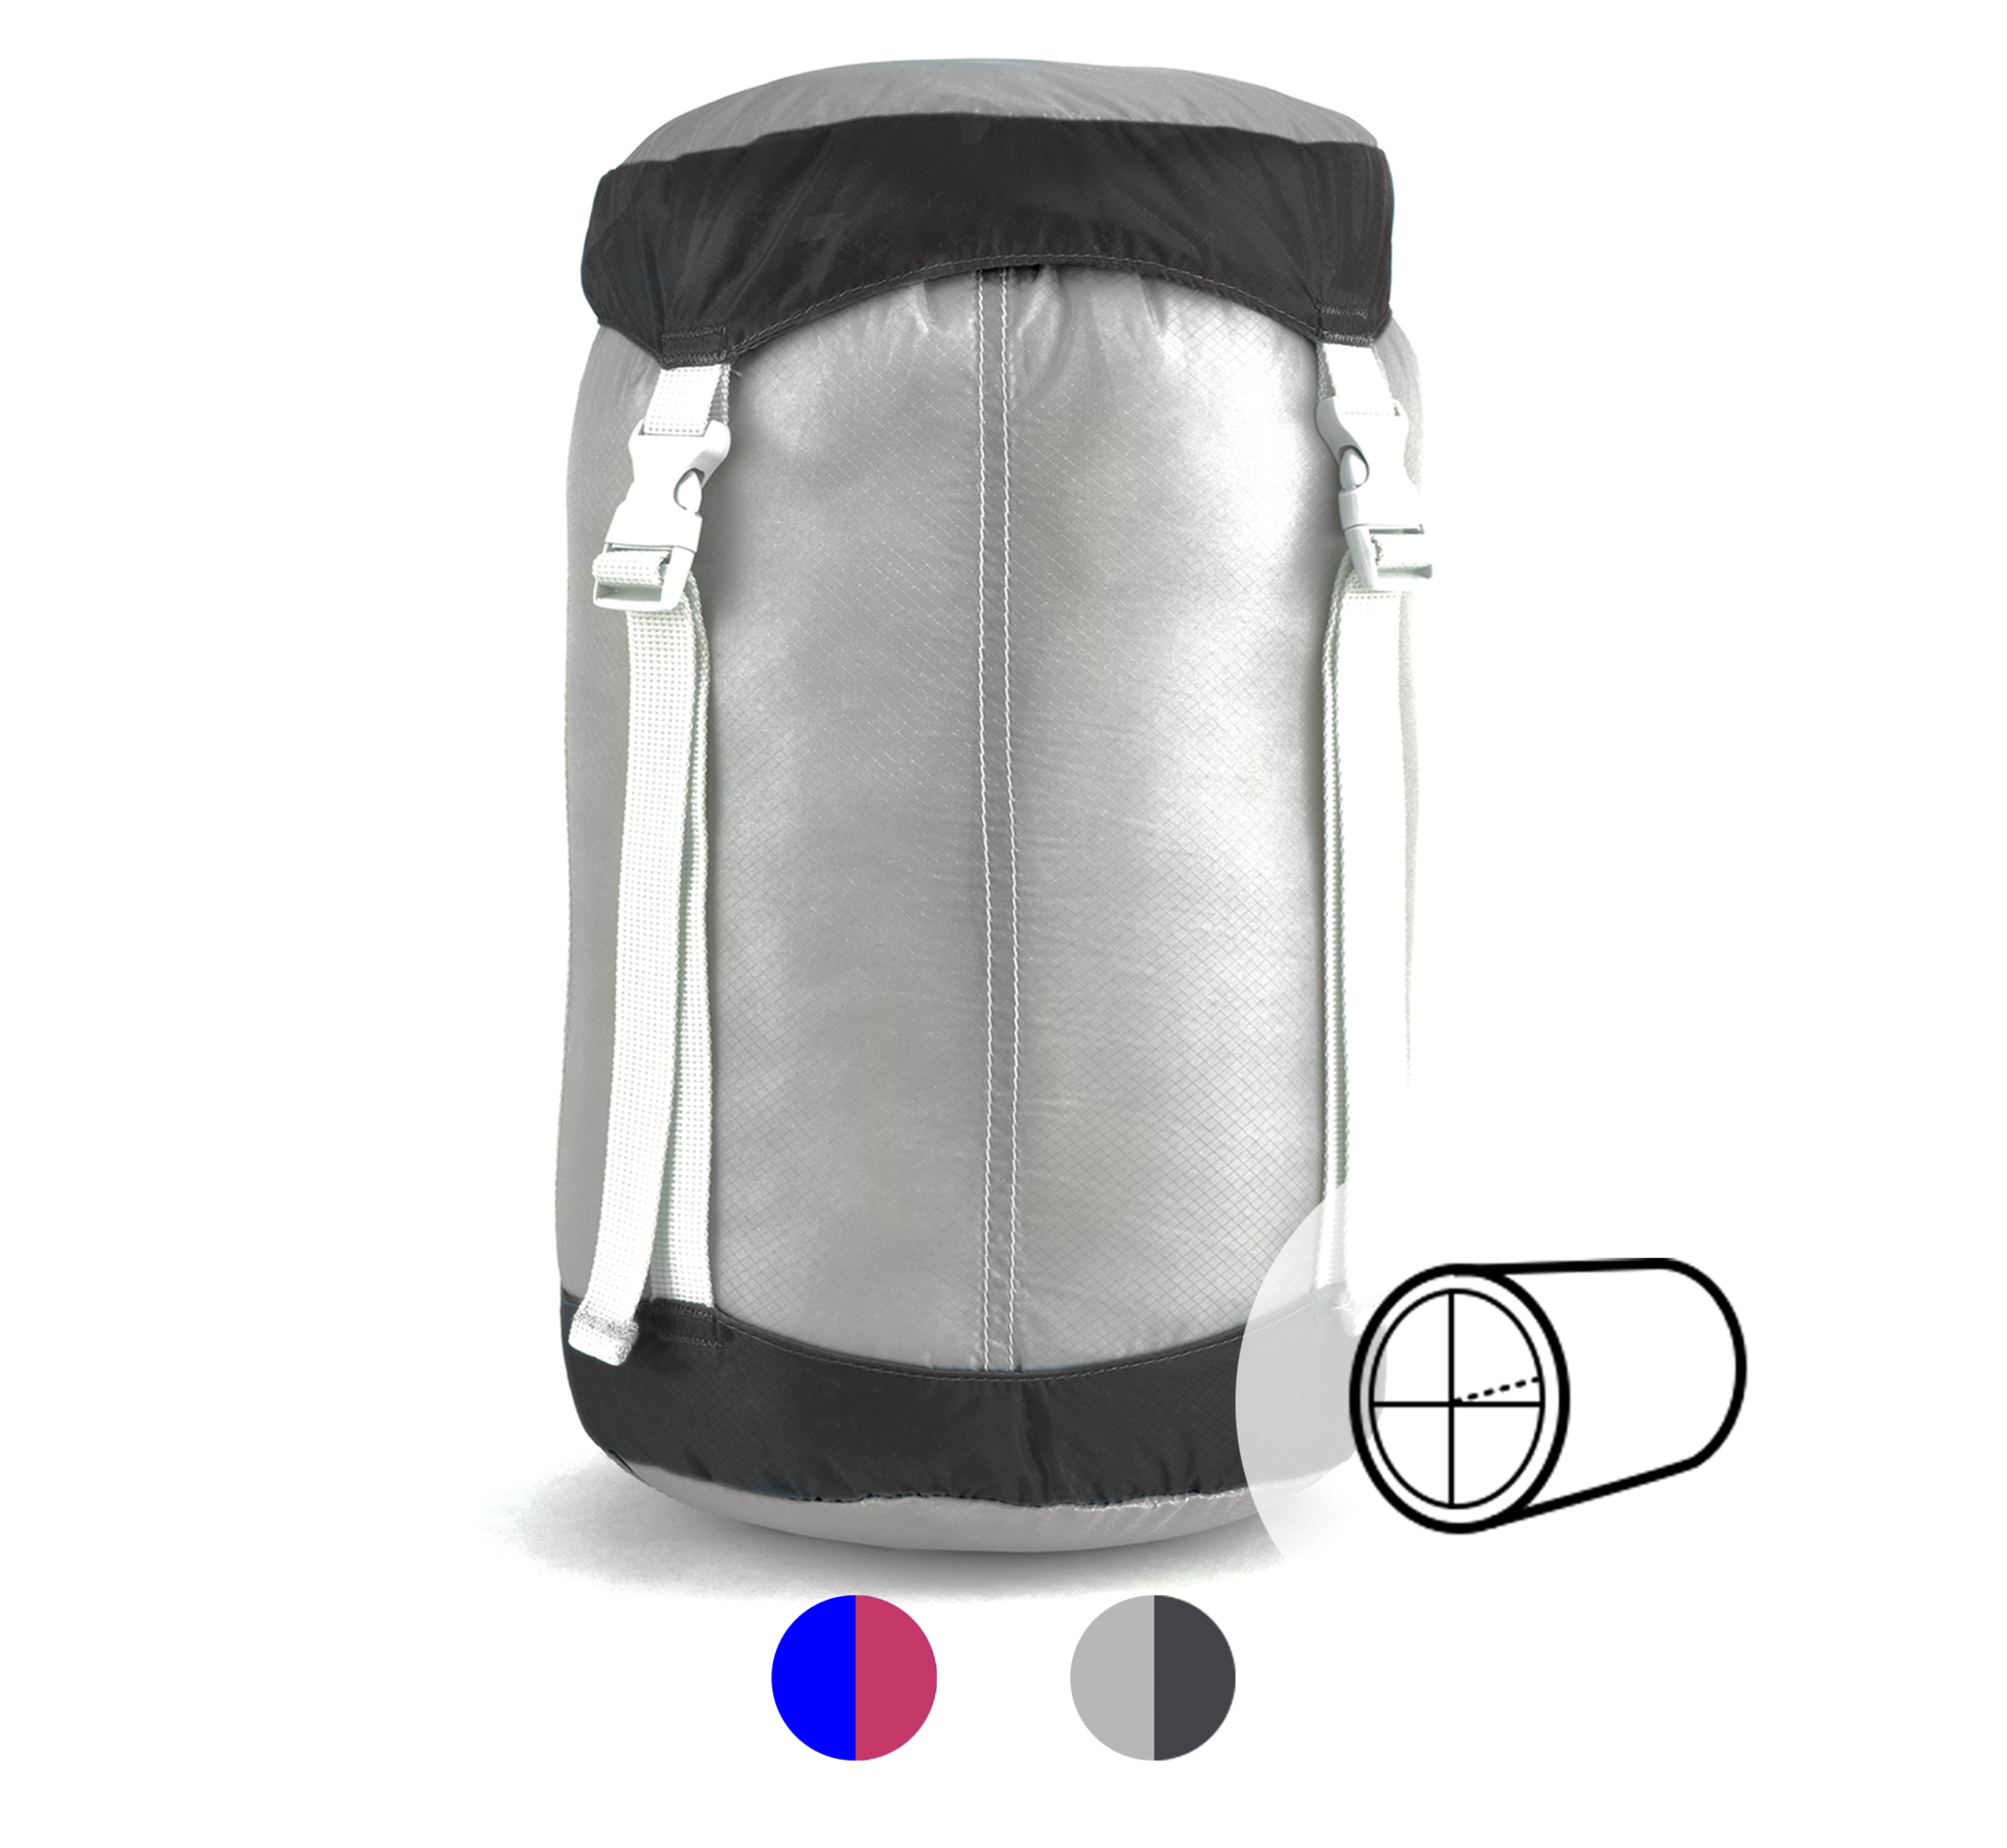 Gobi Gear SegSac Compress